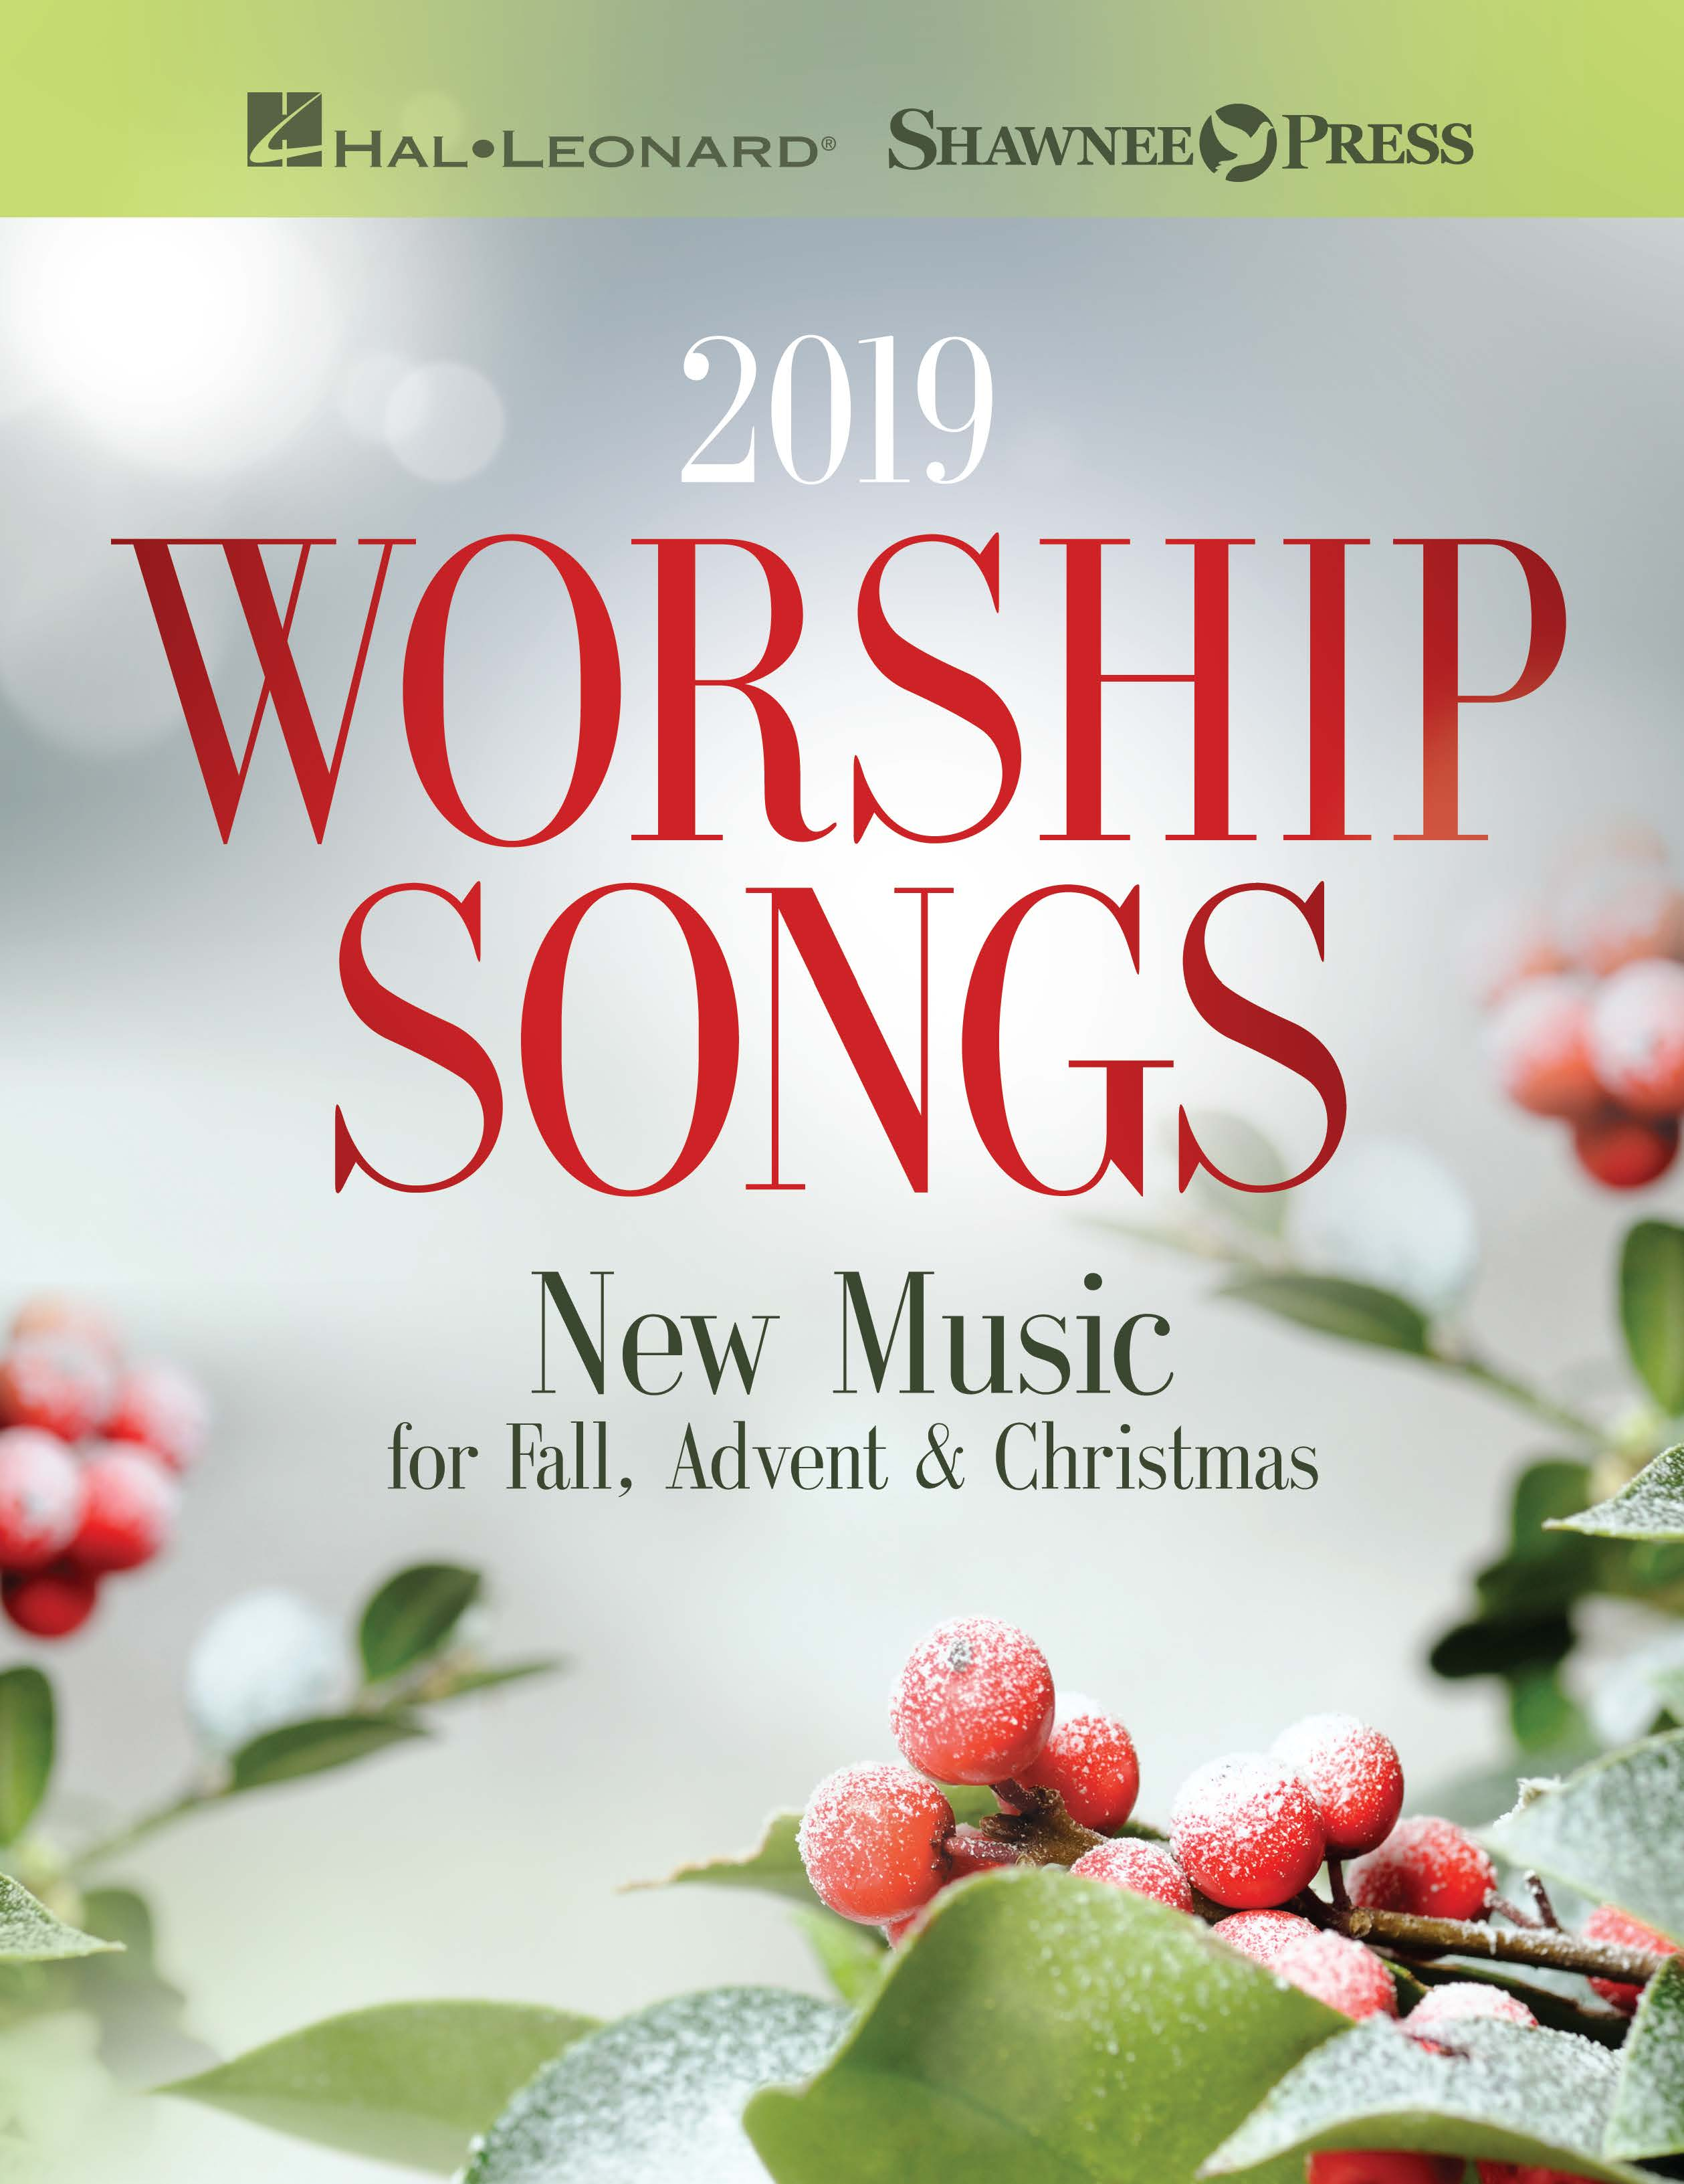 Banner for 2019 Worship Songs - New Music for Fall, Advent and Christmas